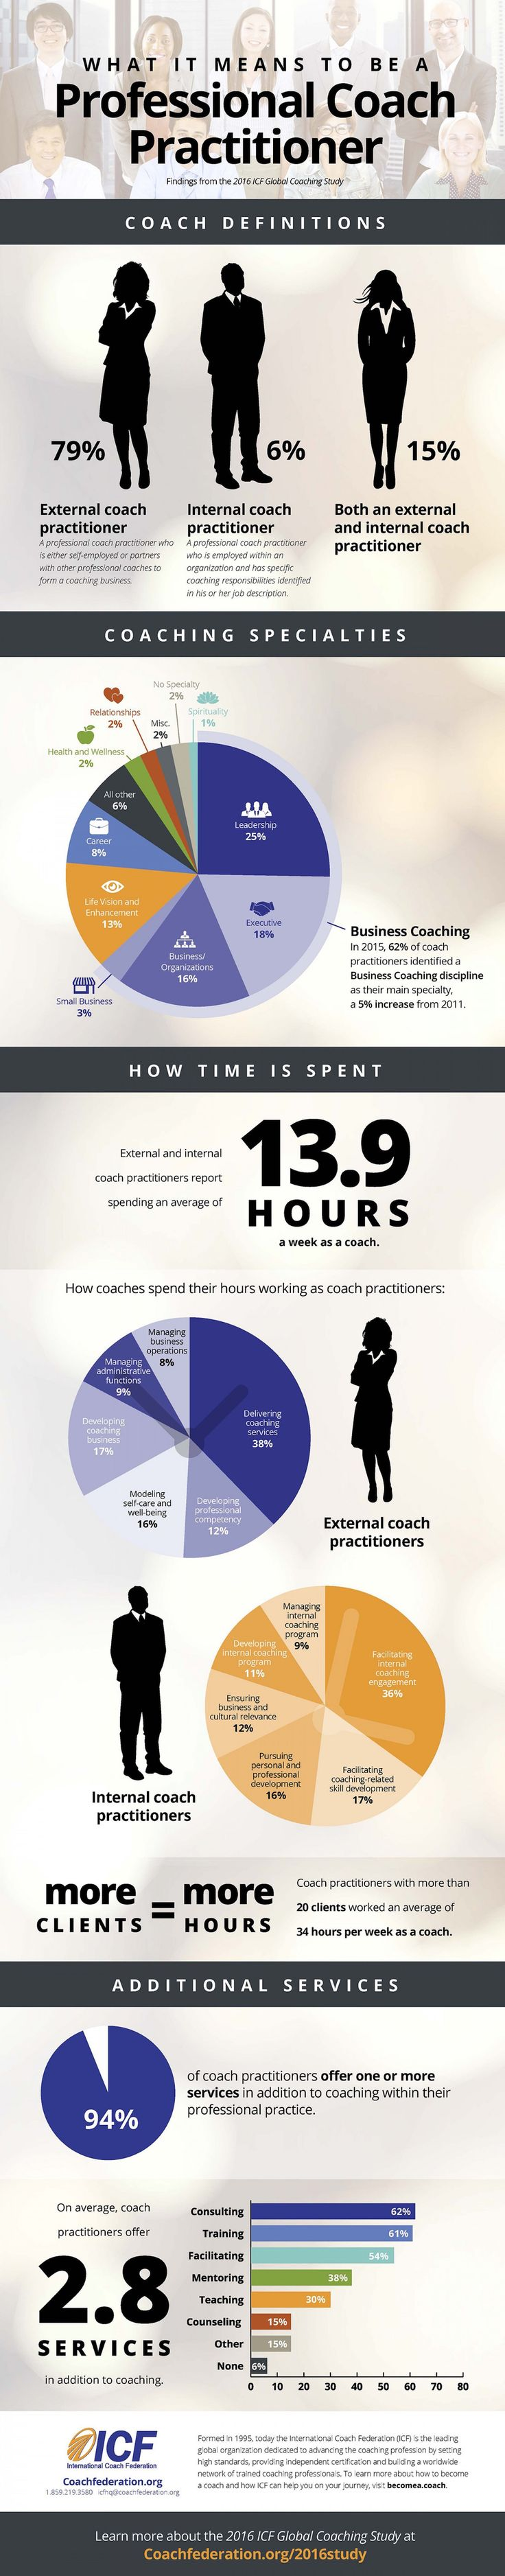 What does a professional coach do? This infographic breaks down types of coaches and specialties, how their time is spent, and additional services coach practitioners offer, according to a recent study bythe International Coach Federation. The 2016 ICF Global Coaching Study, based on a 2015 survey commissioned by ICF and conducted by PricewaterhouseCoopers LLP, uses […]